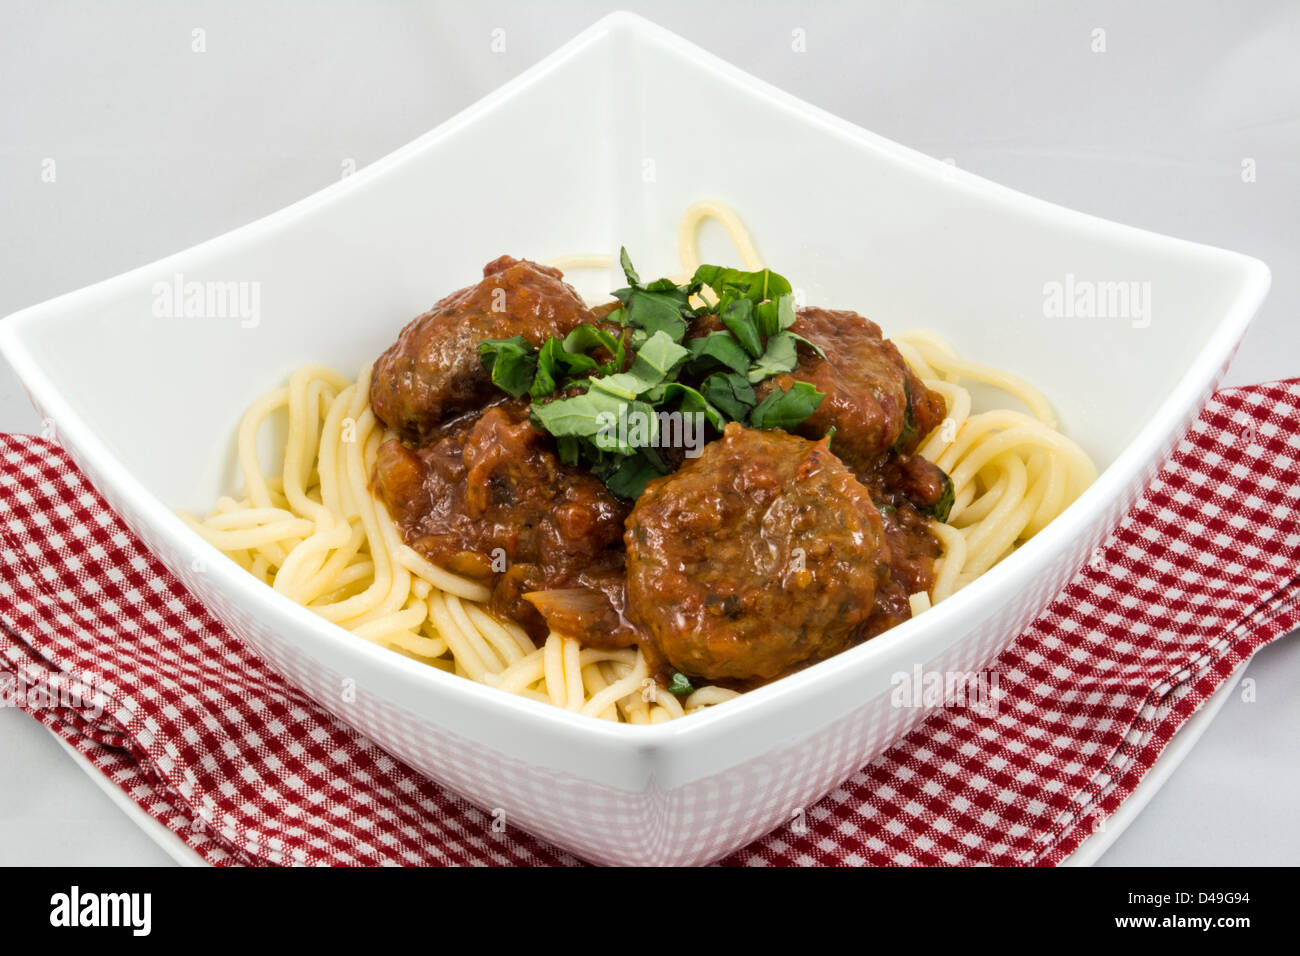 Meatballs with tomato sauce and spaghetti in a white pasta bowl, sitting on a red, gingham cloth - Stock Image